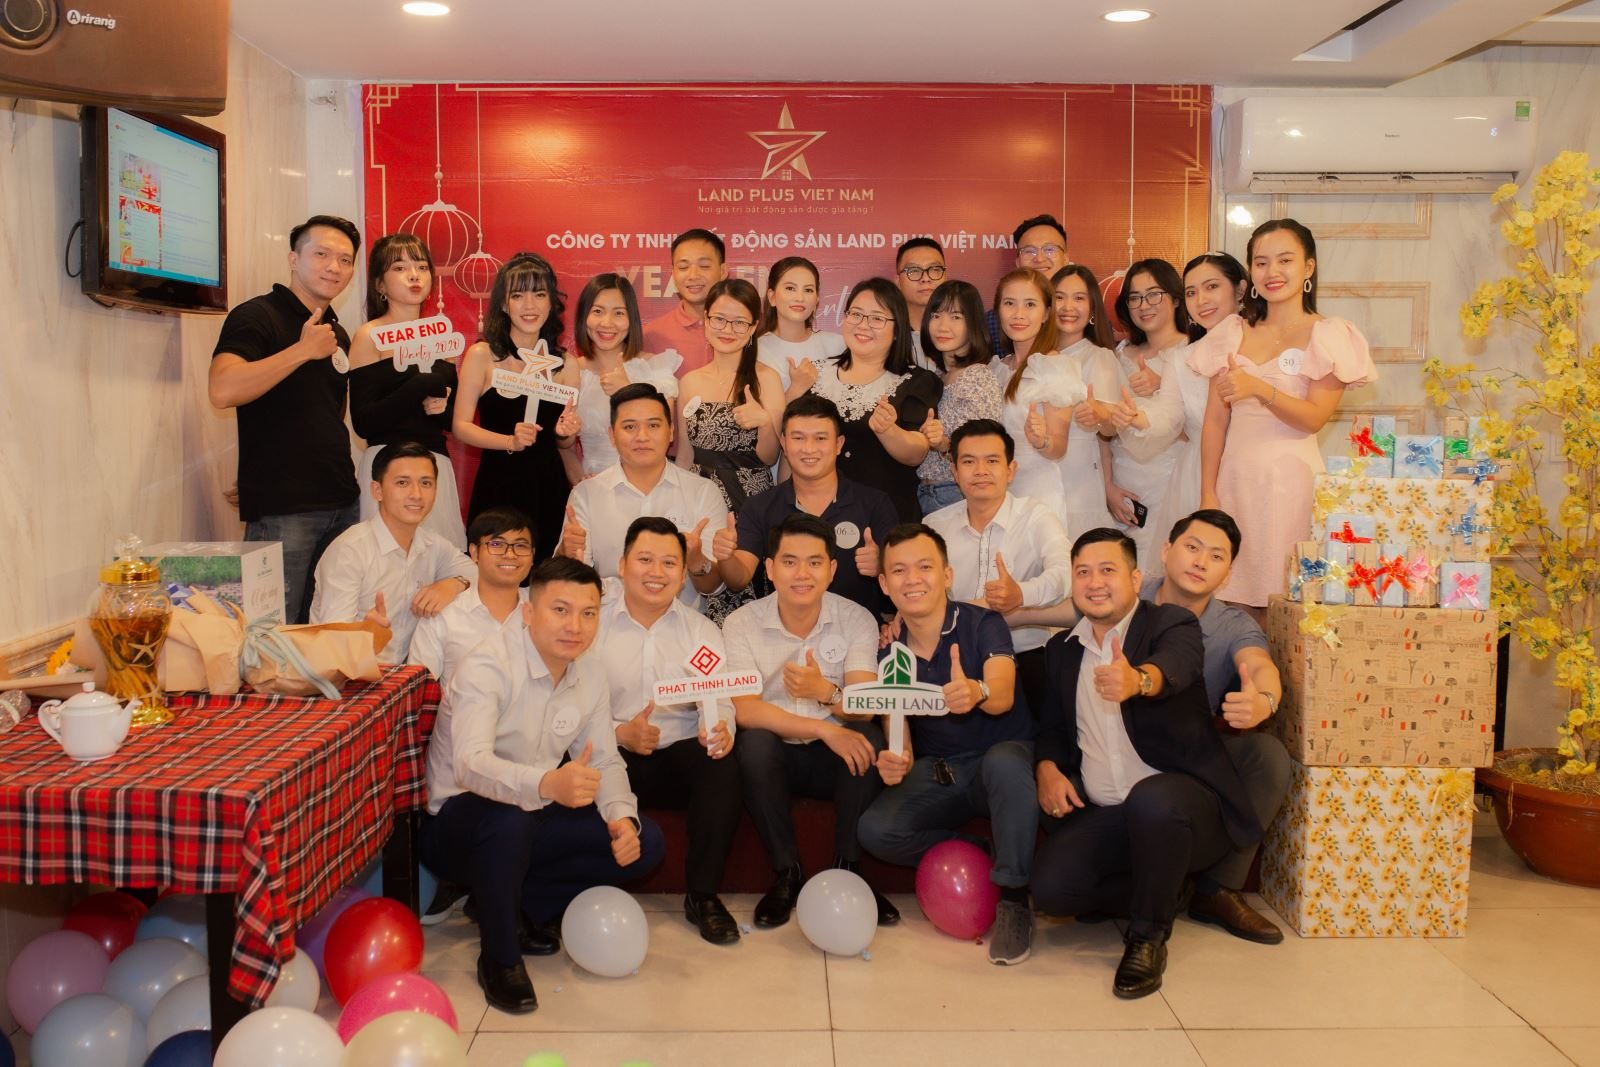 ĐÊM PARTY END YEAR 2021 – DIFFERENCE TO BE SUCCESSFUL – LAND PLUS VIỆT NAM 31/01/2021